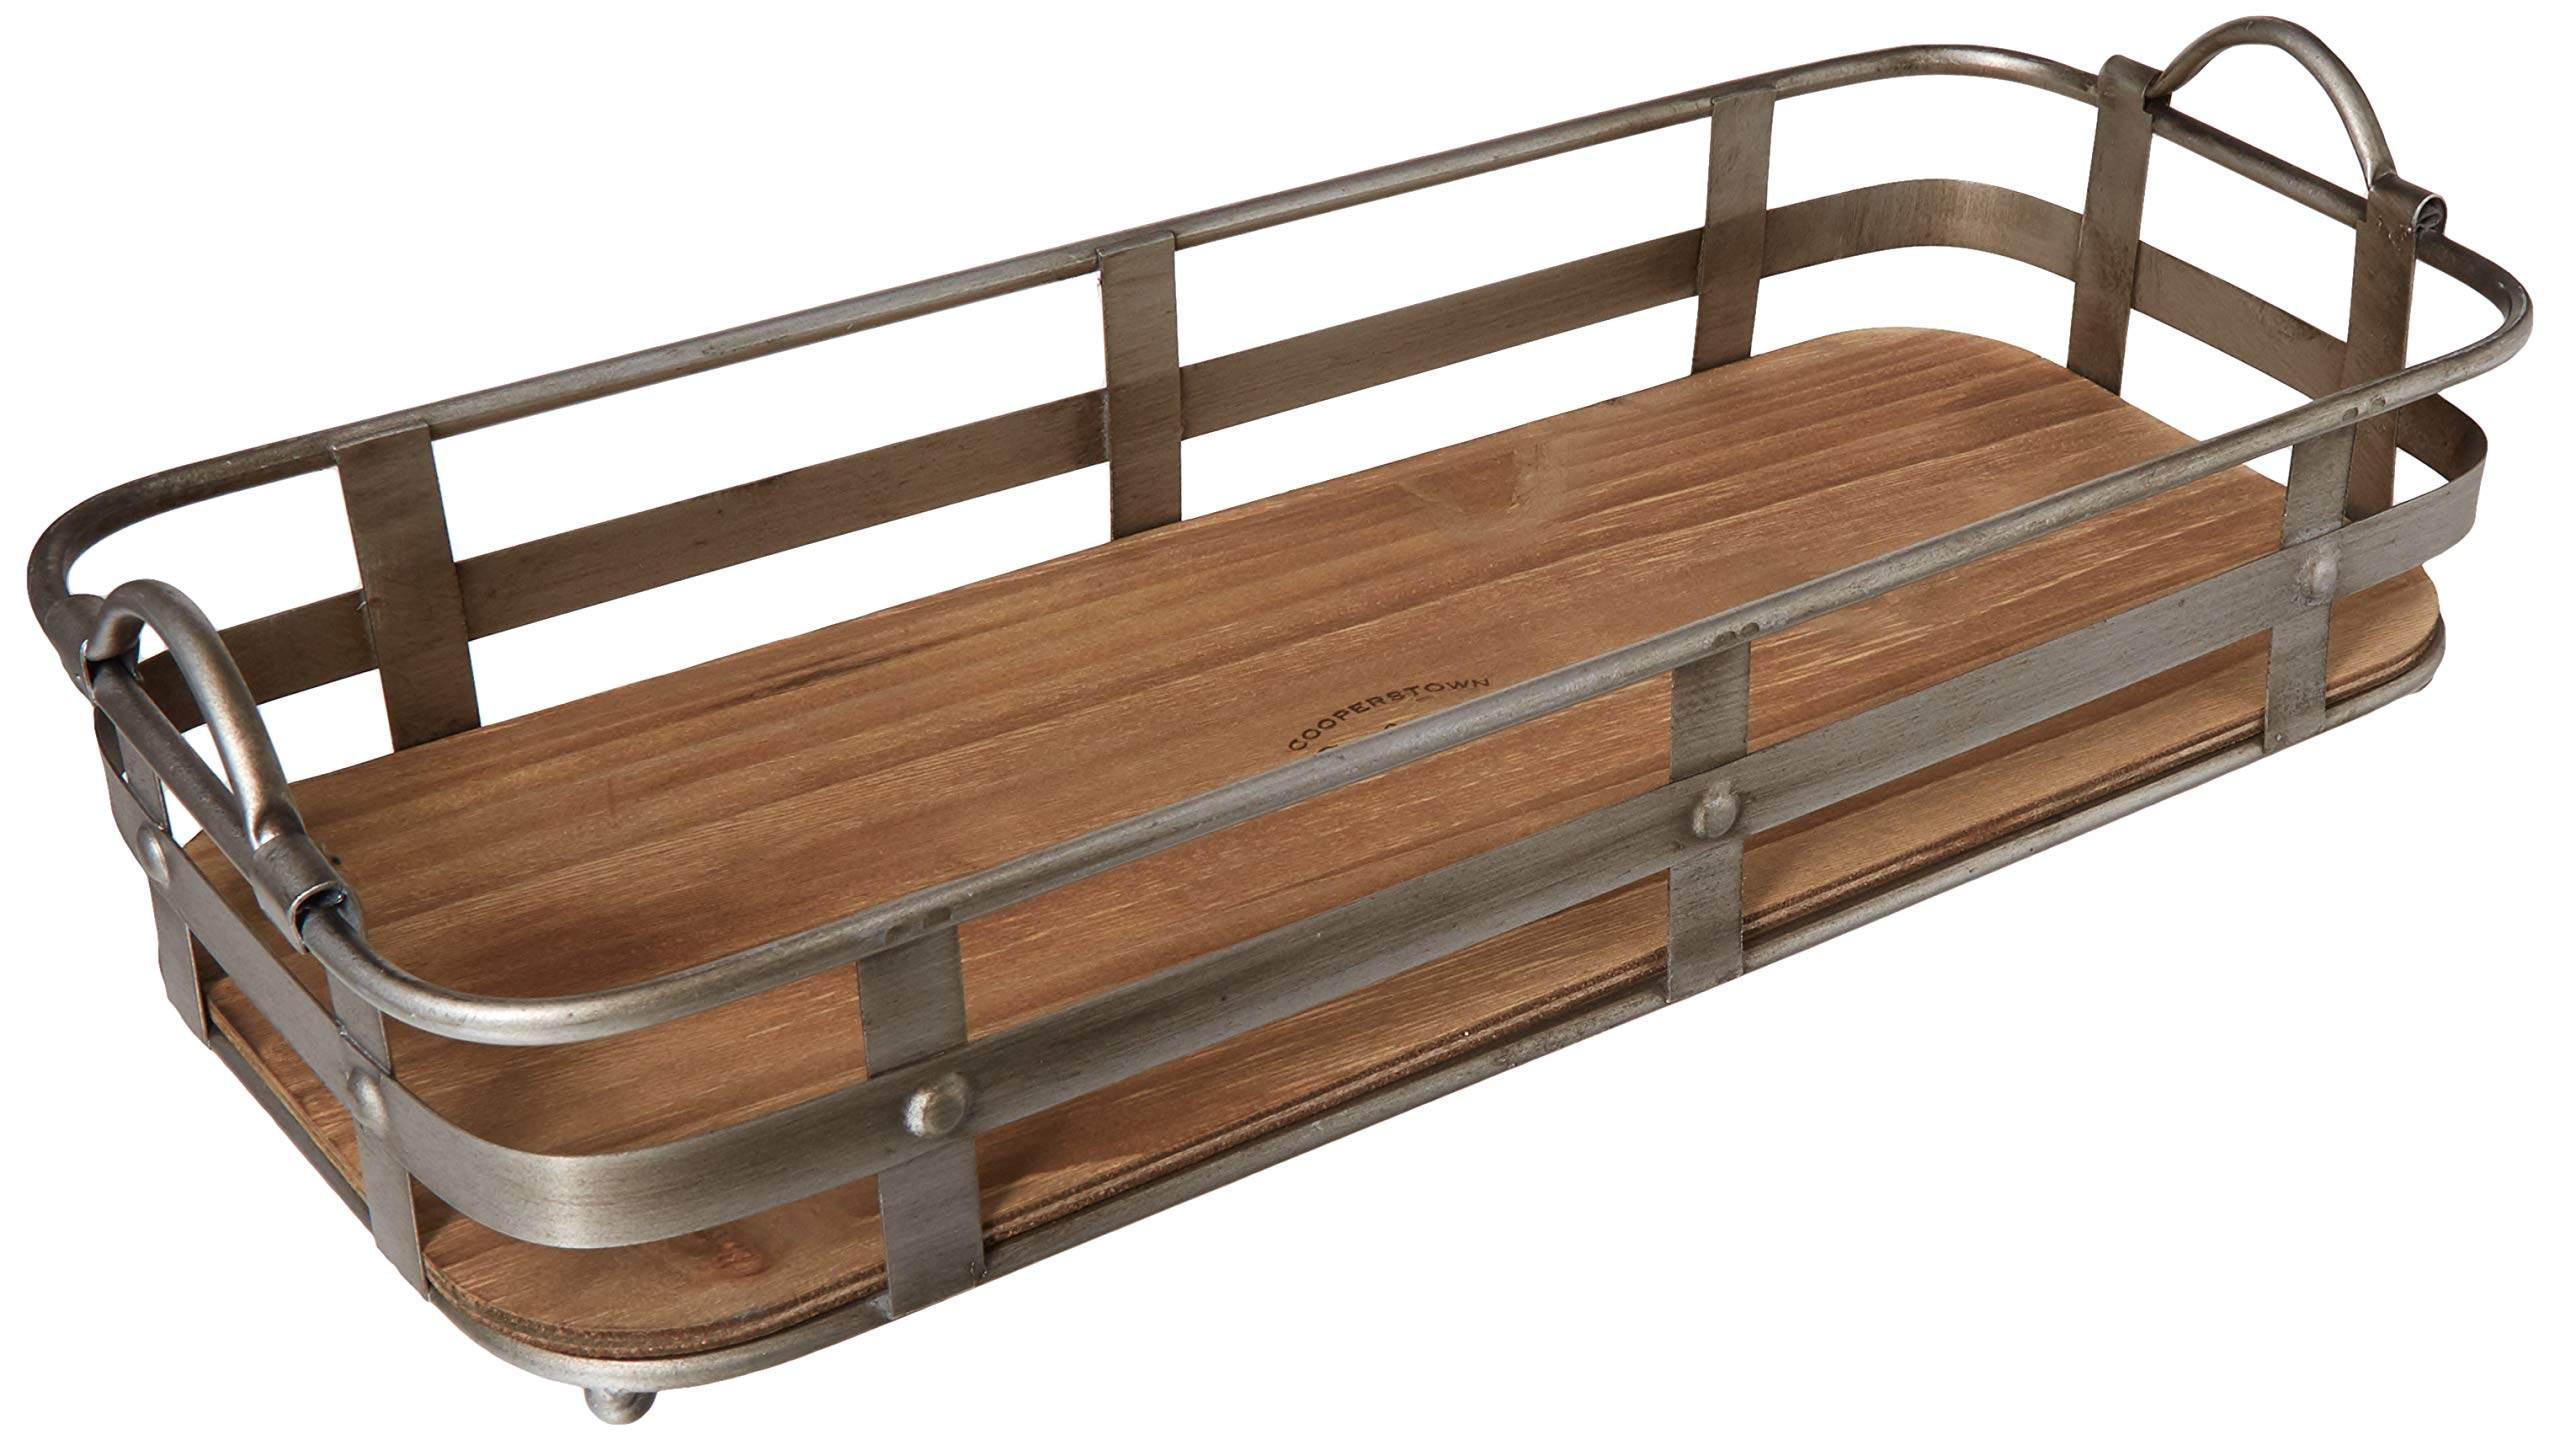 Circleware 02976 Cooperstown Craftsman Rectangle Serving Tray with Handles Home and Kitchen Multi-Purpose Serveware for Coffee Table, Dinner, Breakfast, Food, Farmhouse Decor 19'' x 8.5'' x 4.5'' Wood by Circleware